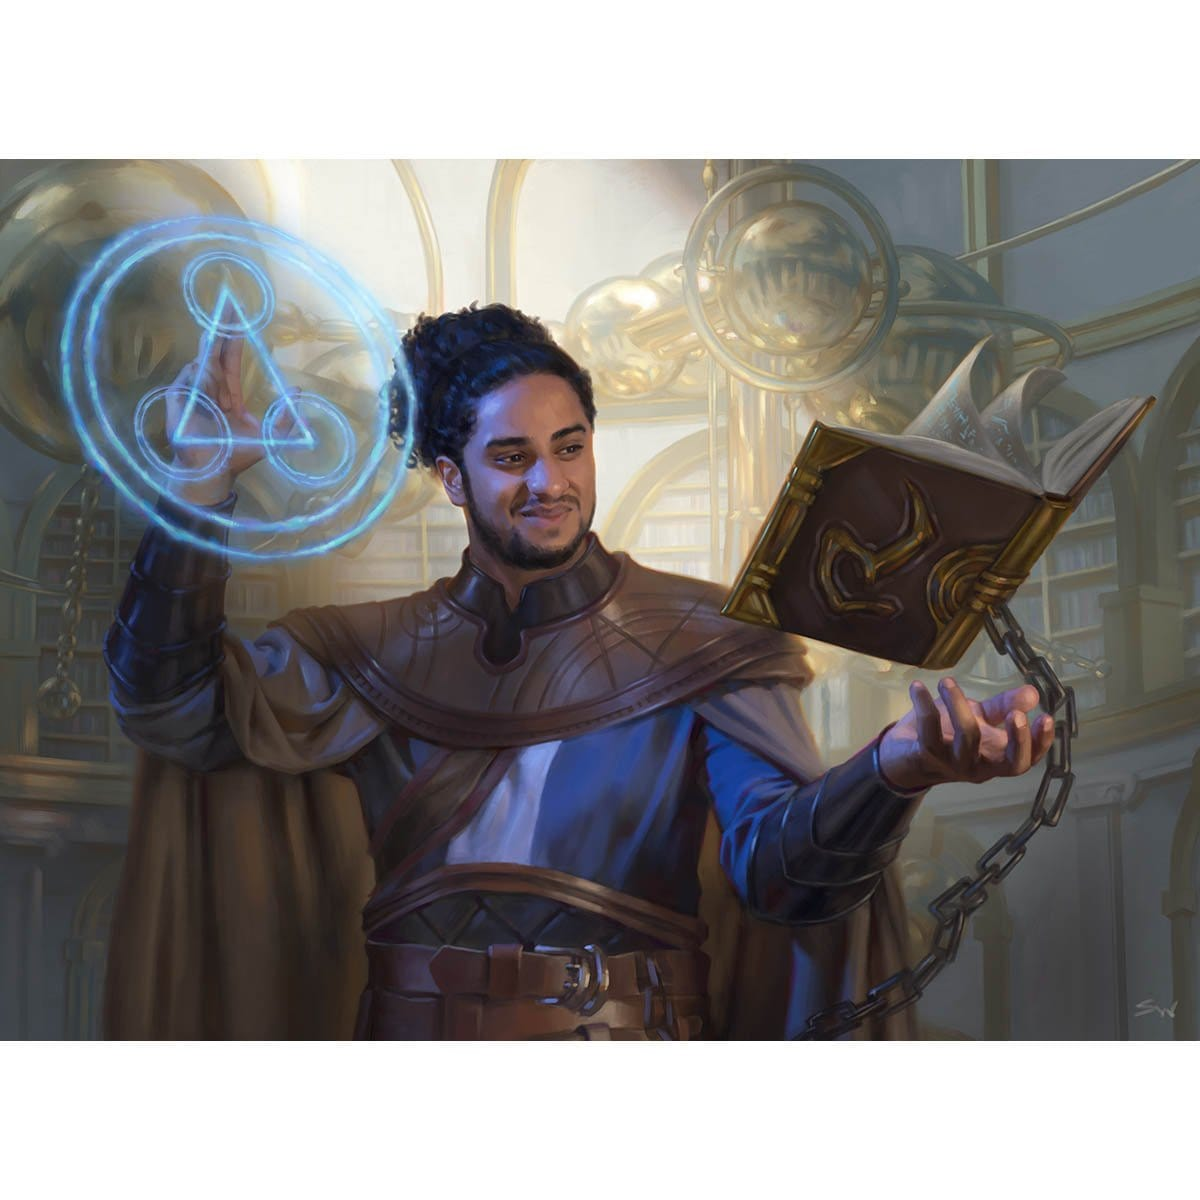 Tolarian Scholar Print - Print - Original Magic Art - Accessories for Magic the Gathering and other card games